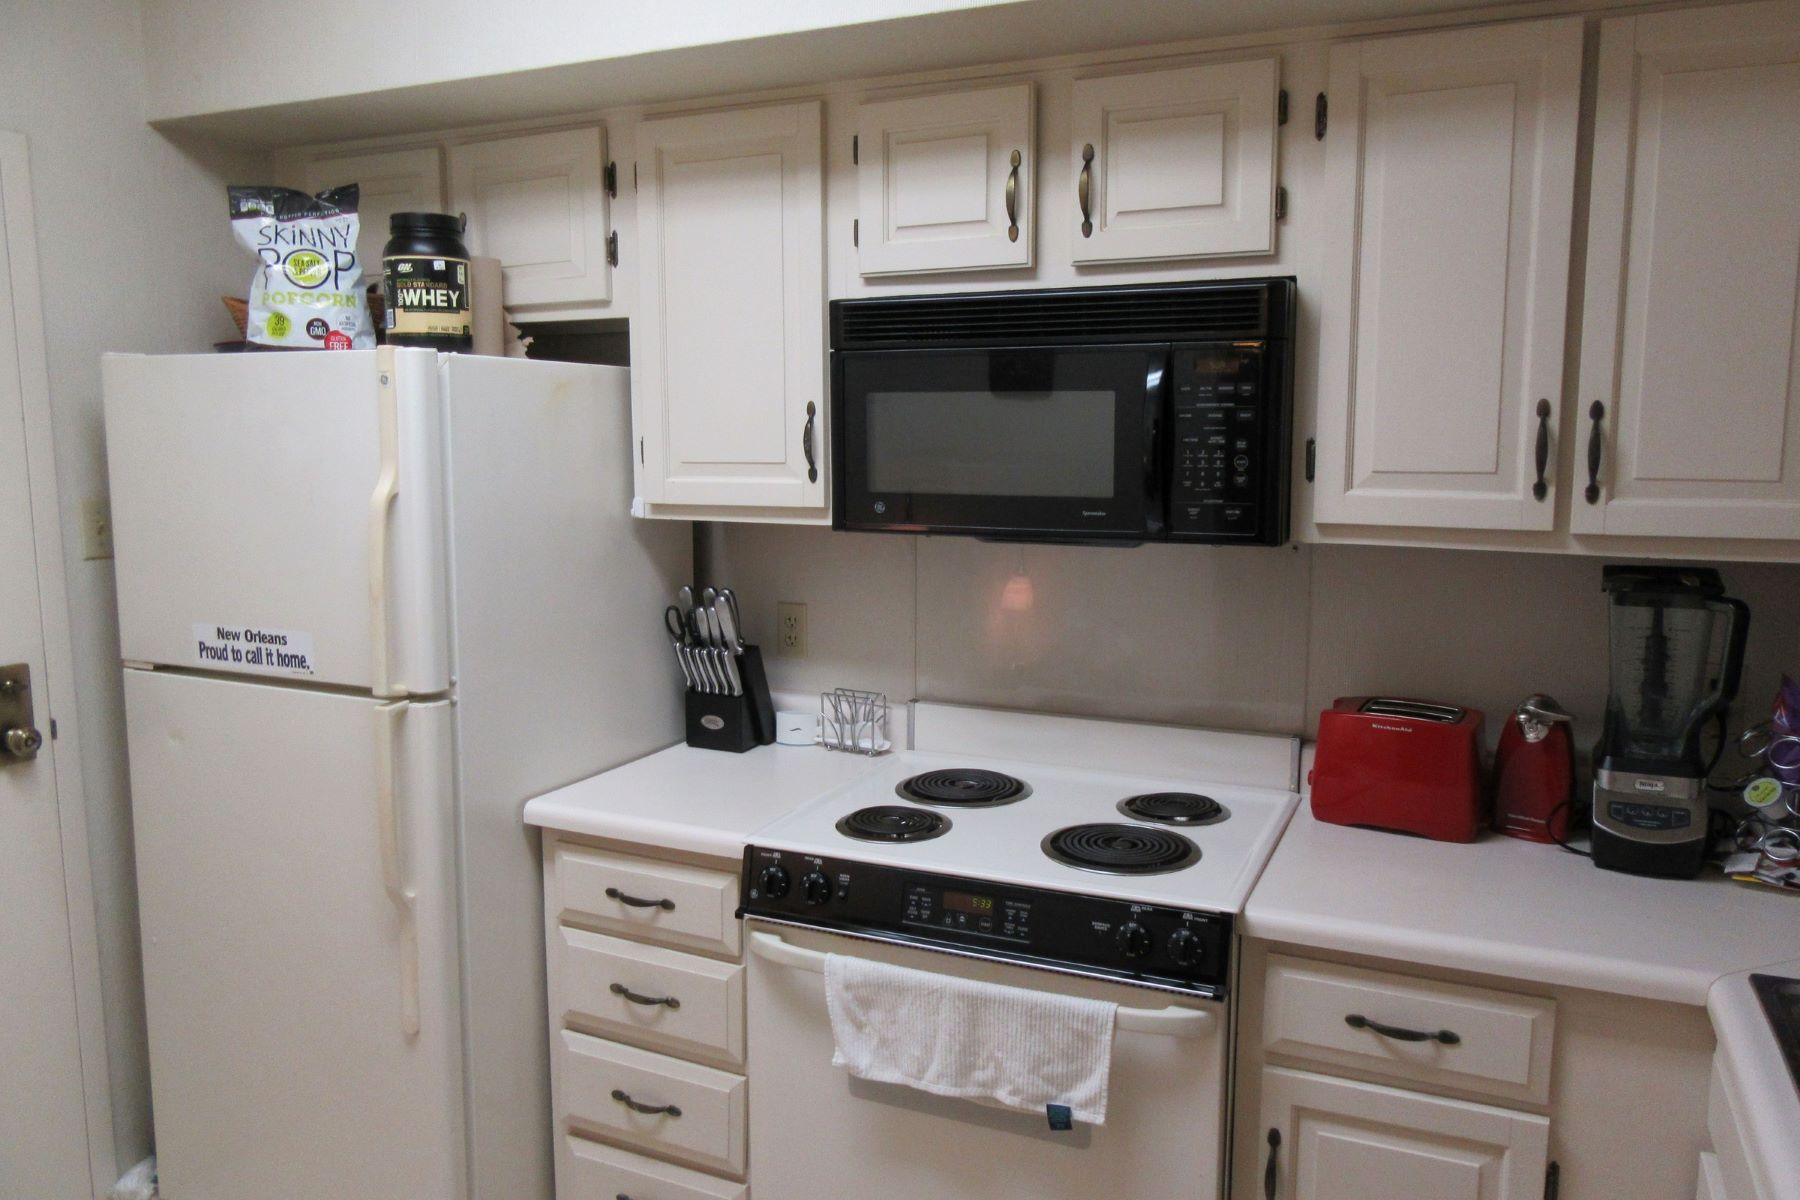 Additional photo for property listing at 1750 St Charles Avenue, # 337 1750 St Charles Ave # 337 New Orleans, Louisiana 70130 United States